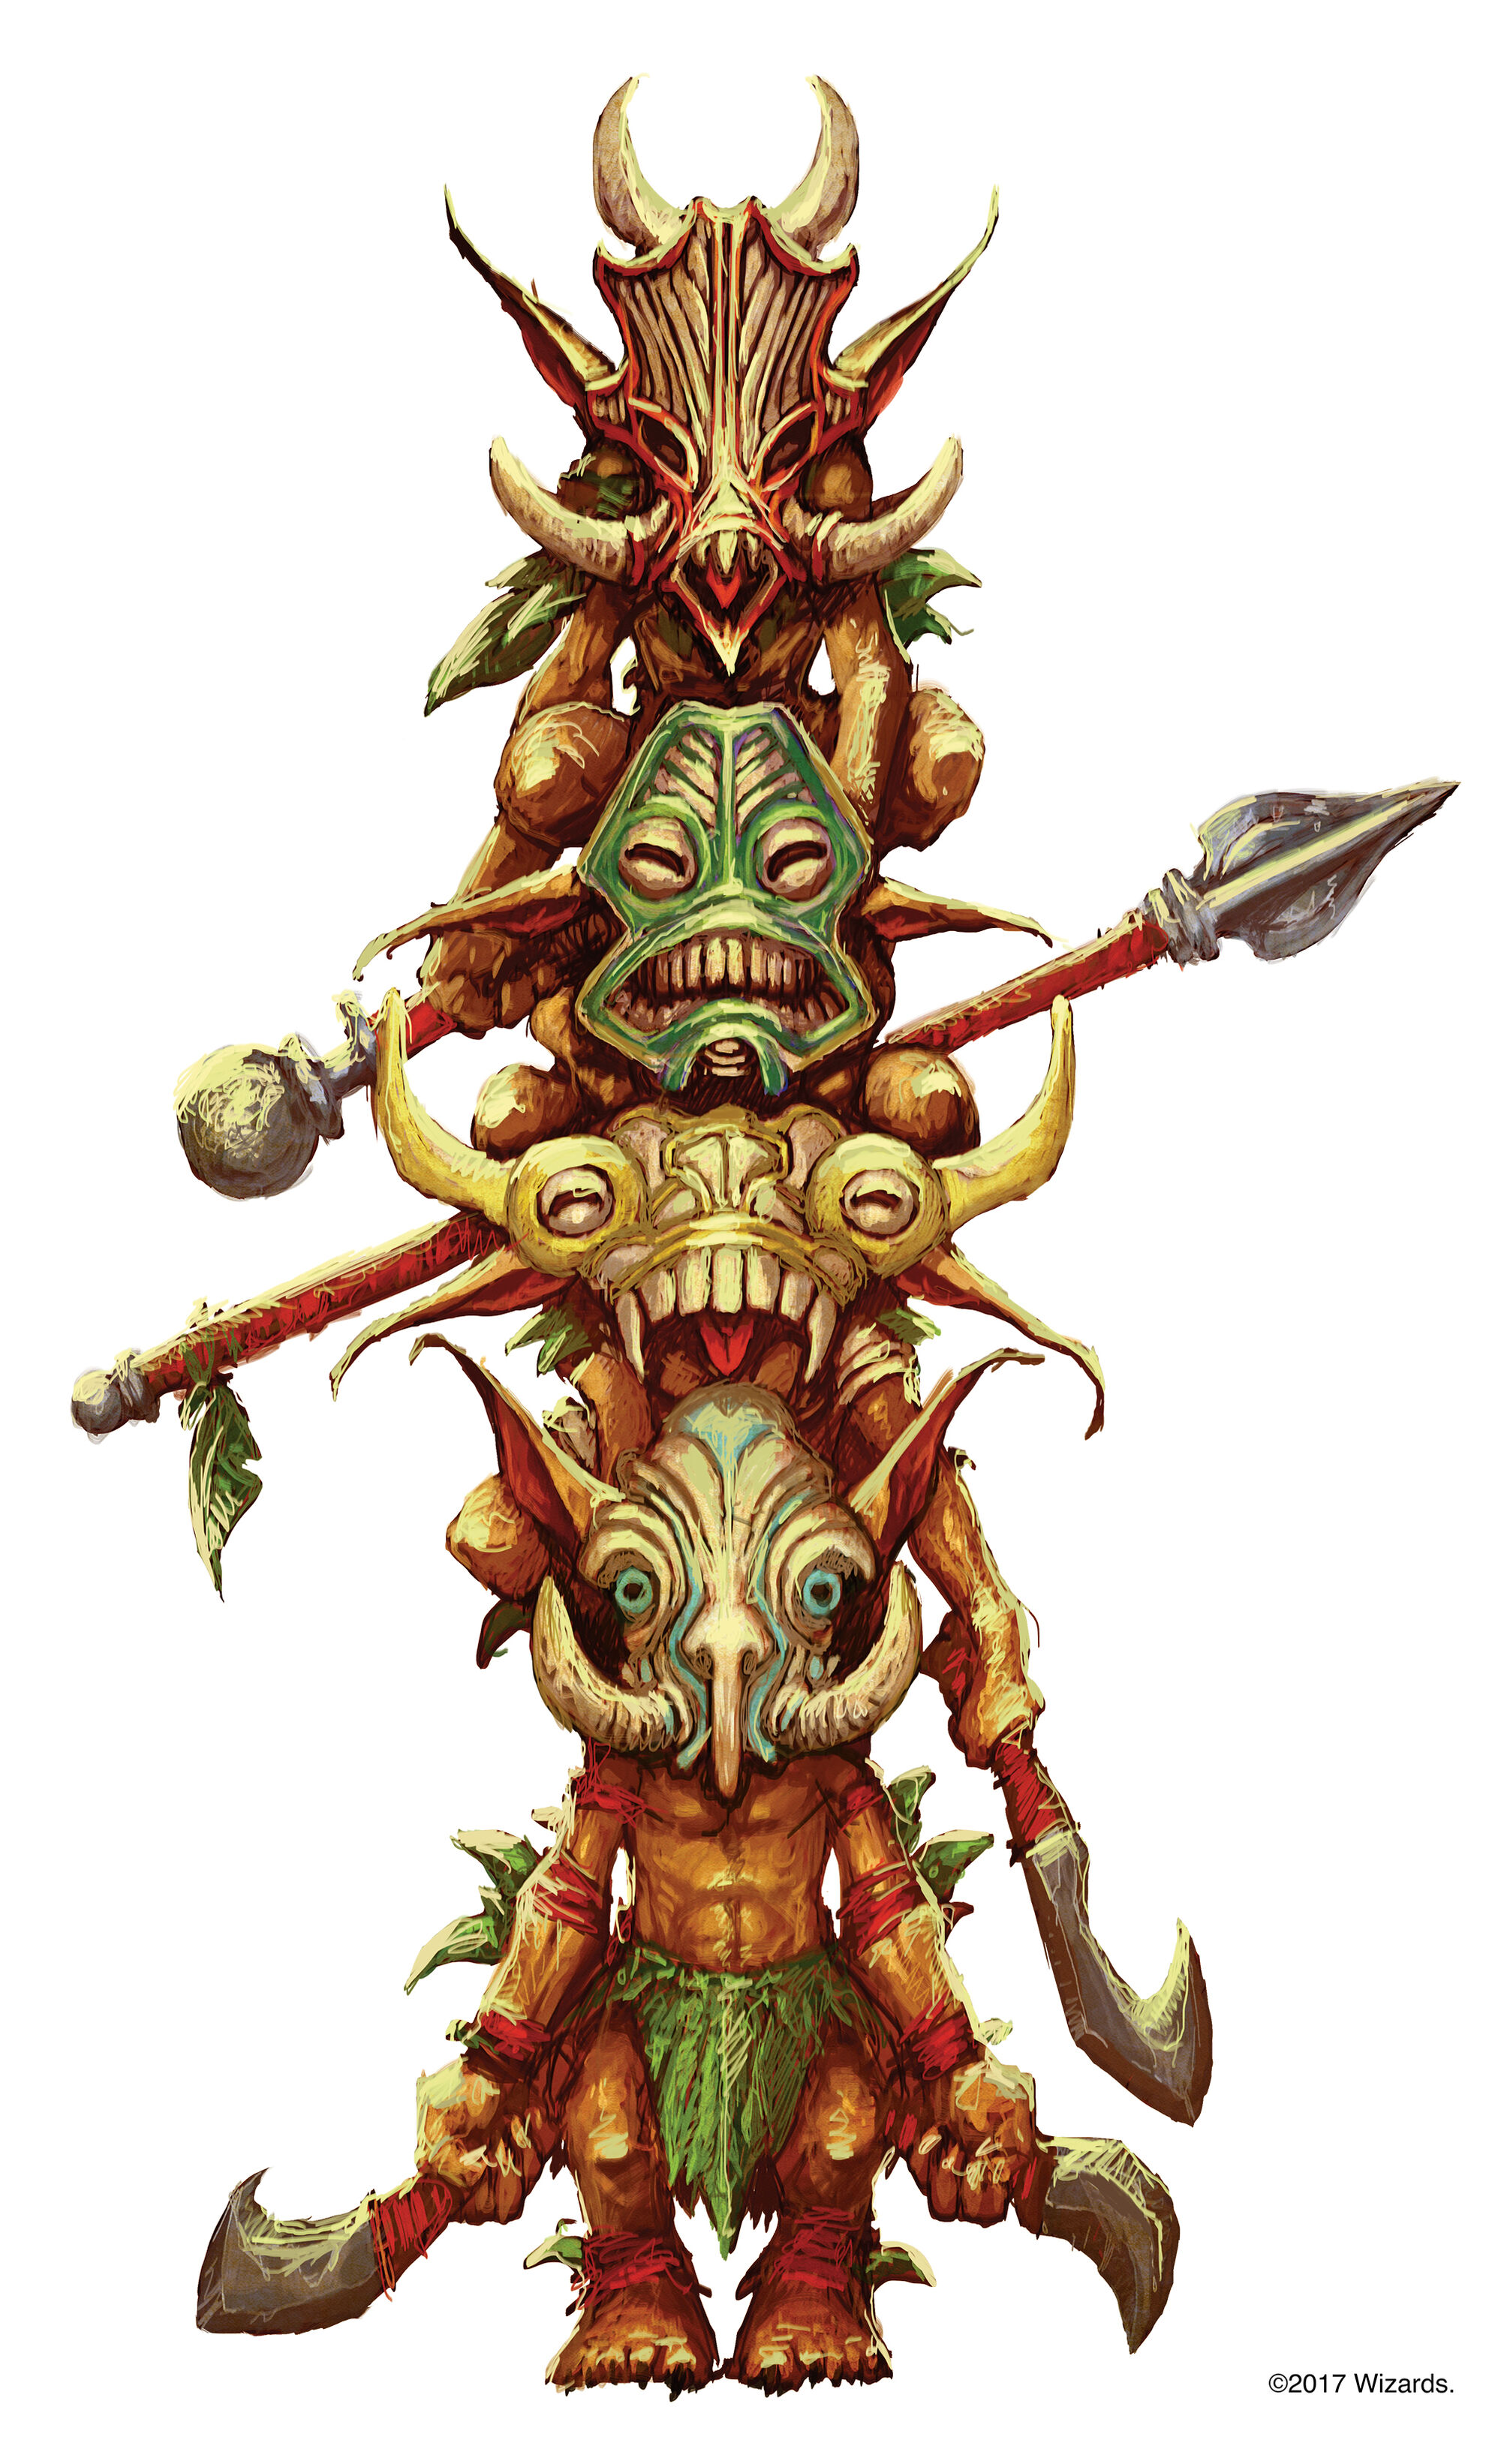 NO MASK BATIRI GOBLIN 2 Tomb of Annihilation D/&D Dungeons and Dragons miniature